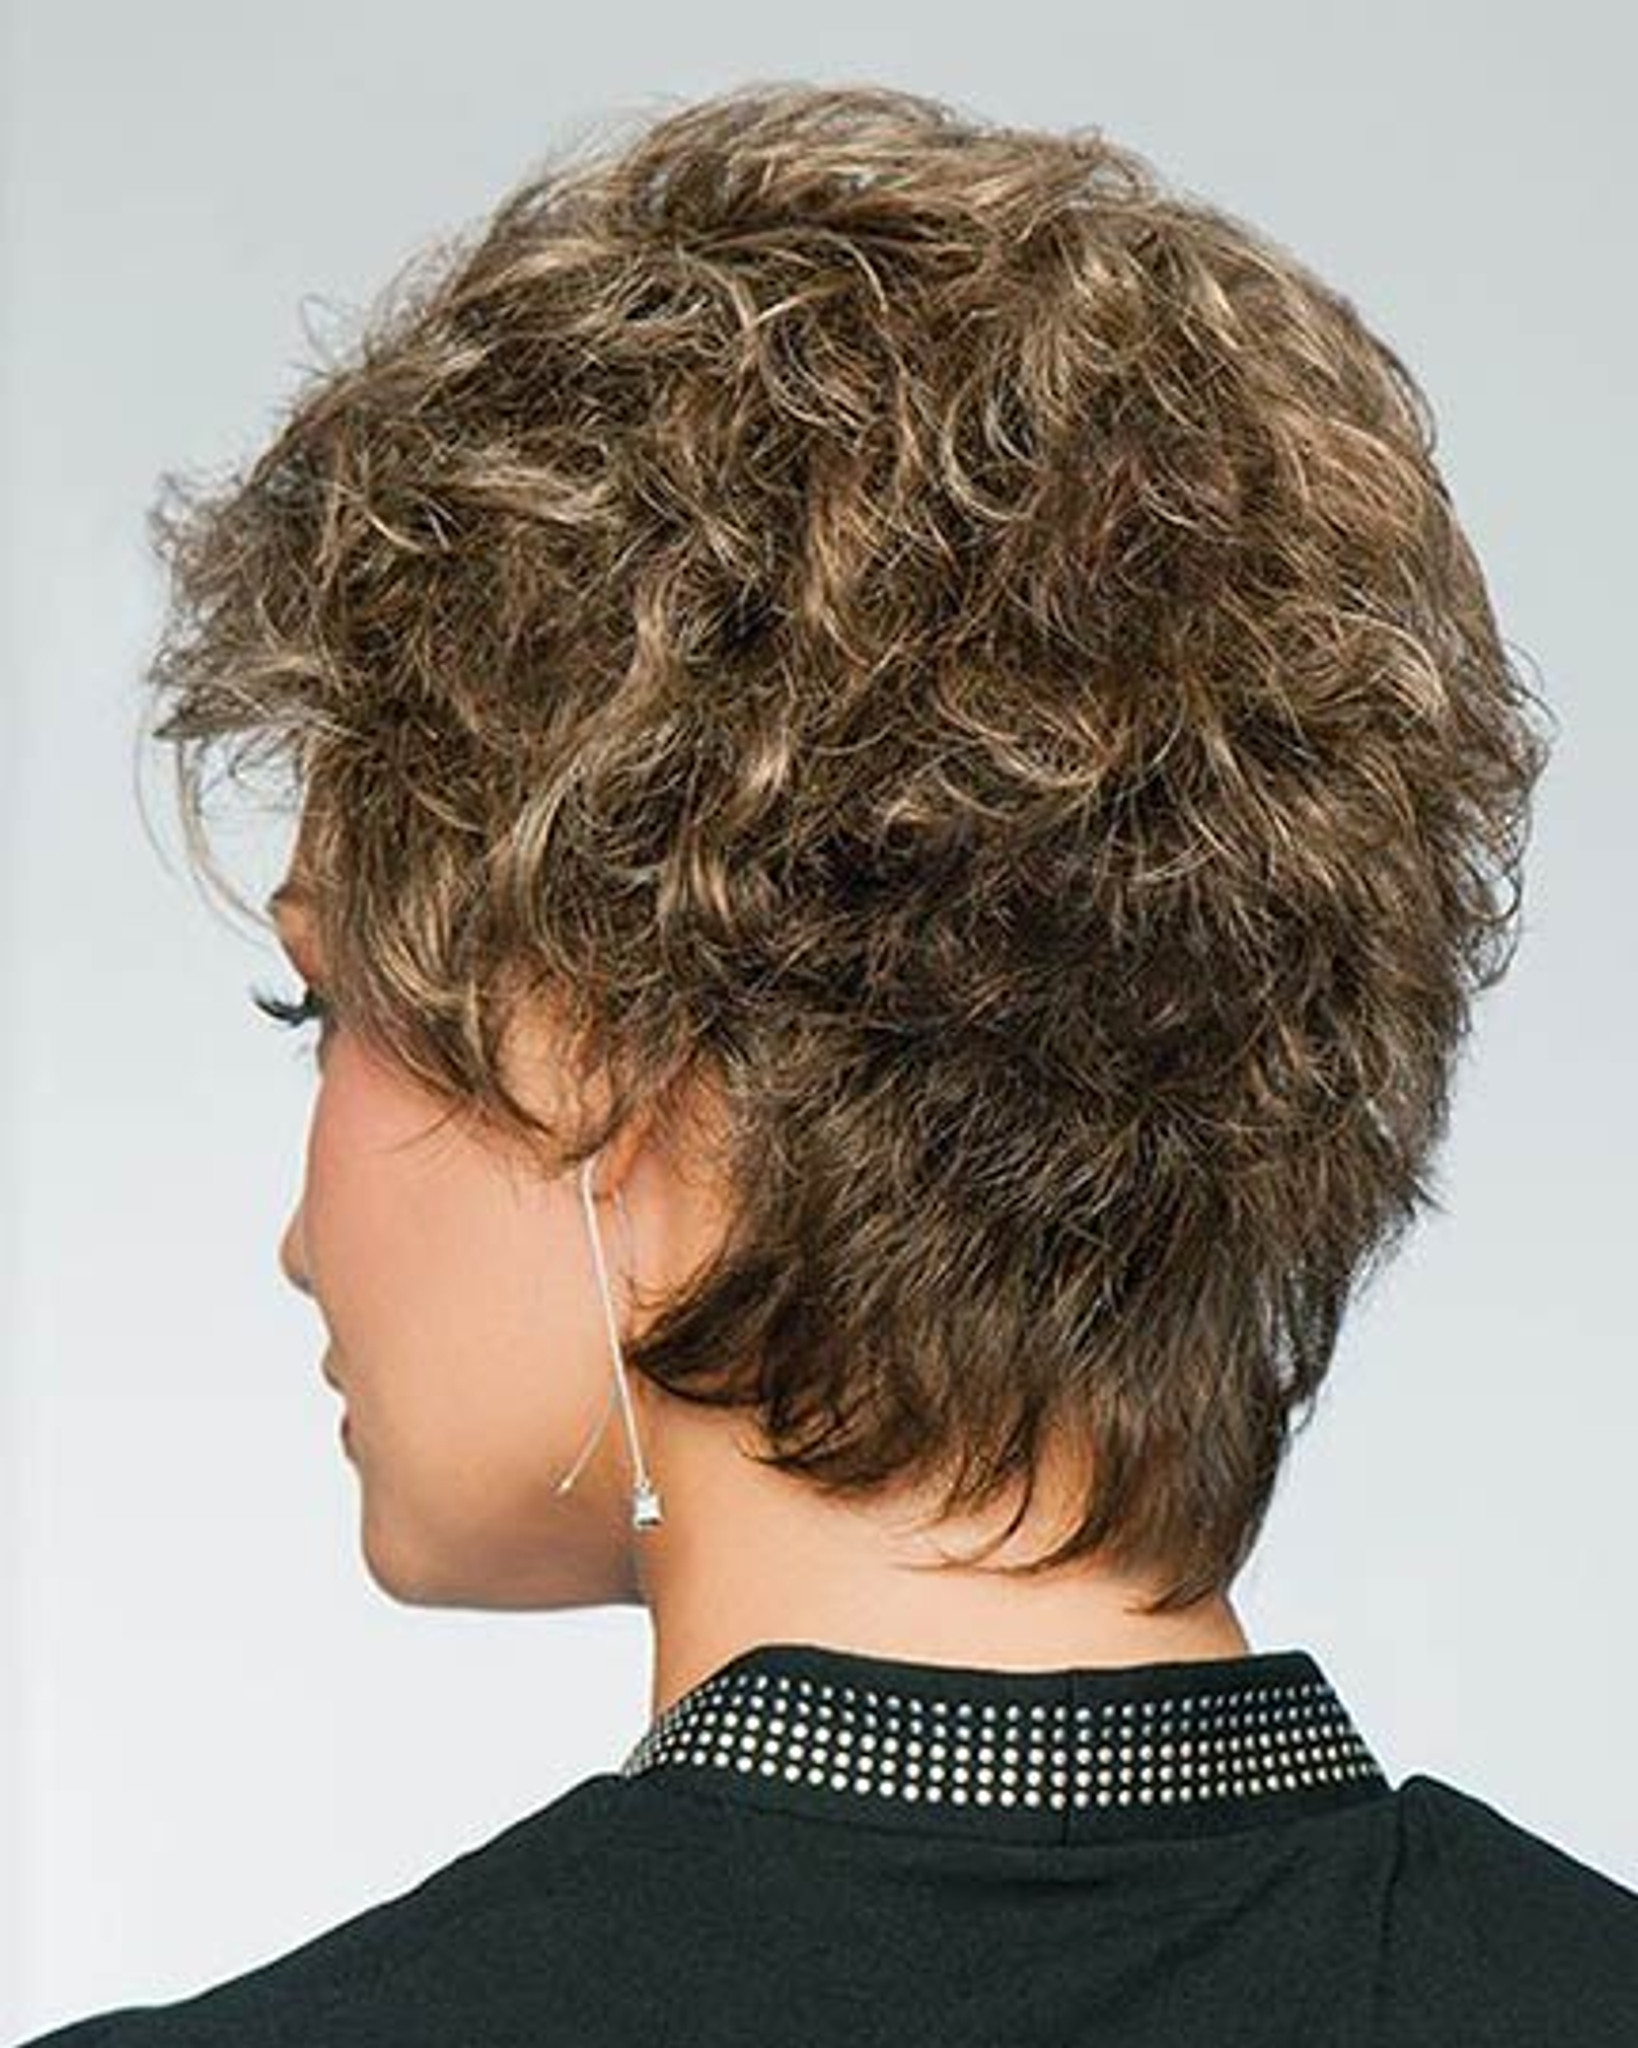 gabor synthetic wig Instinct back  view